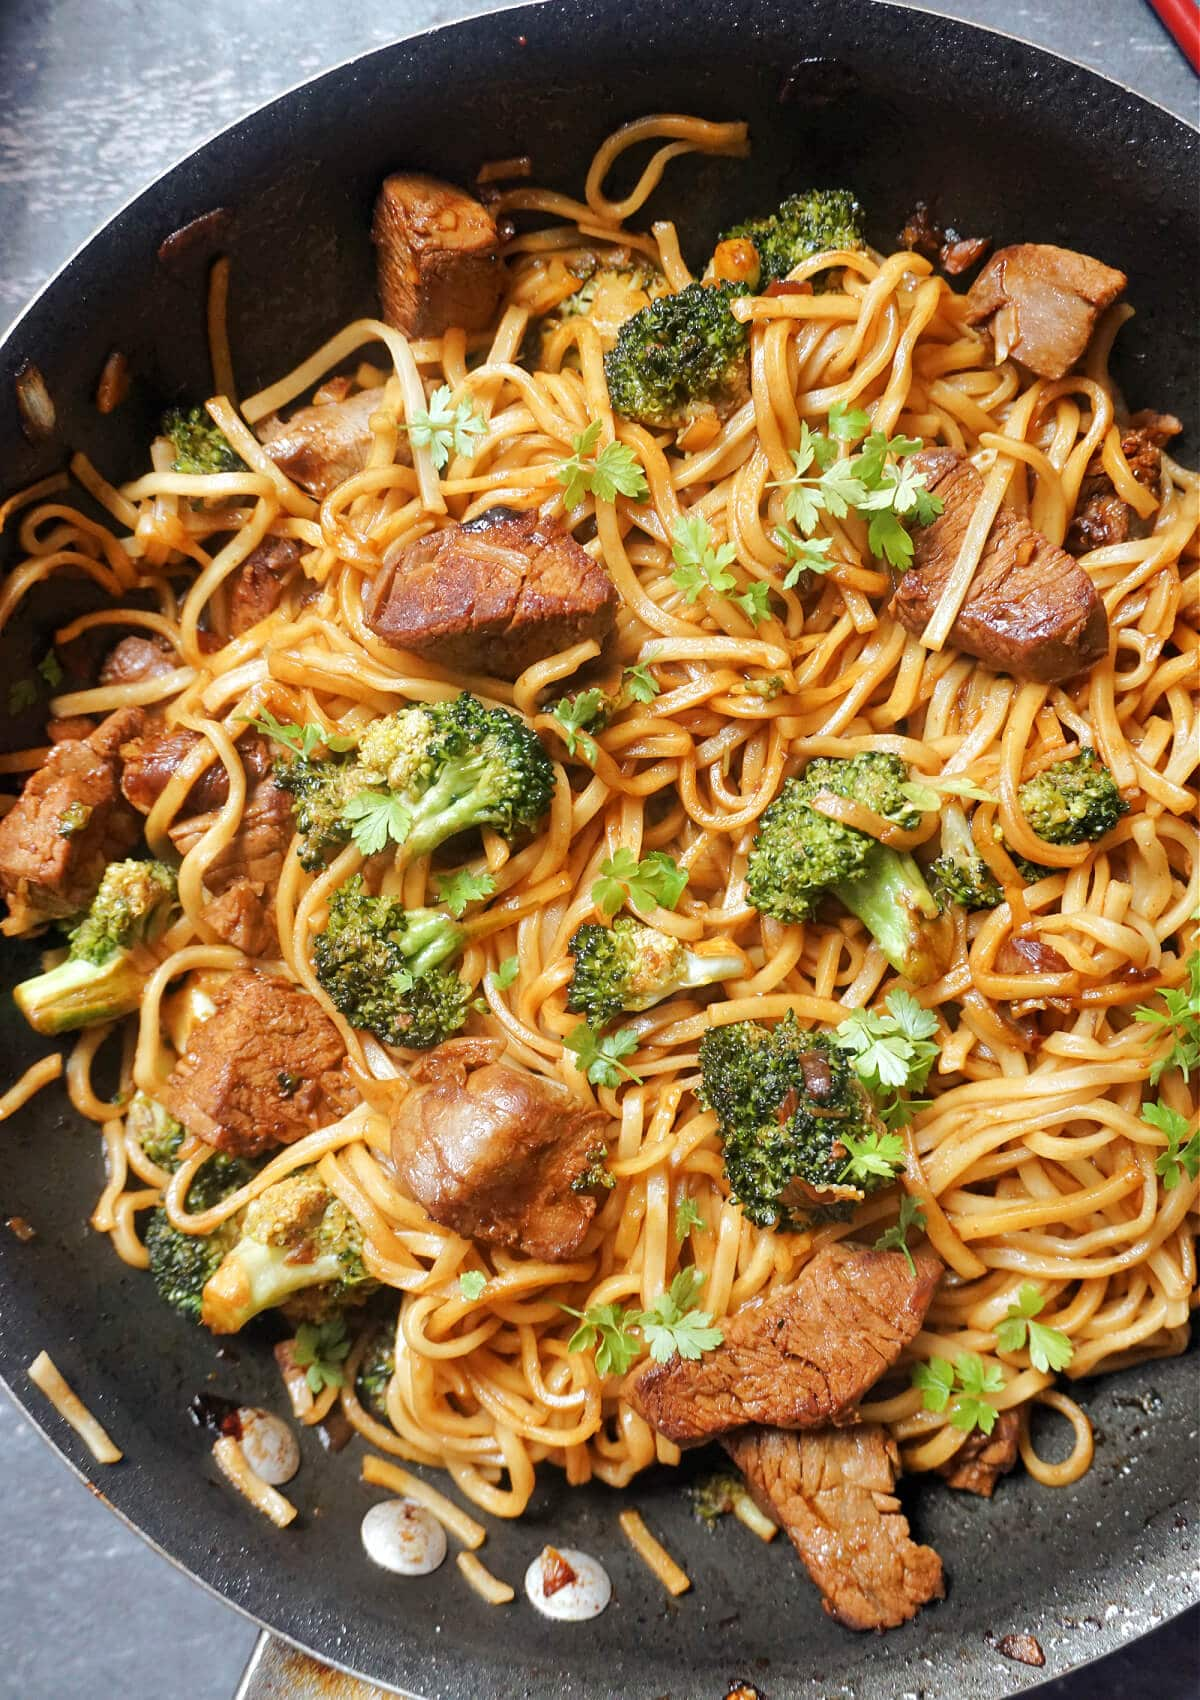 A wok with noodles beef and broccoli